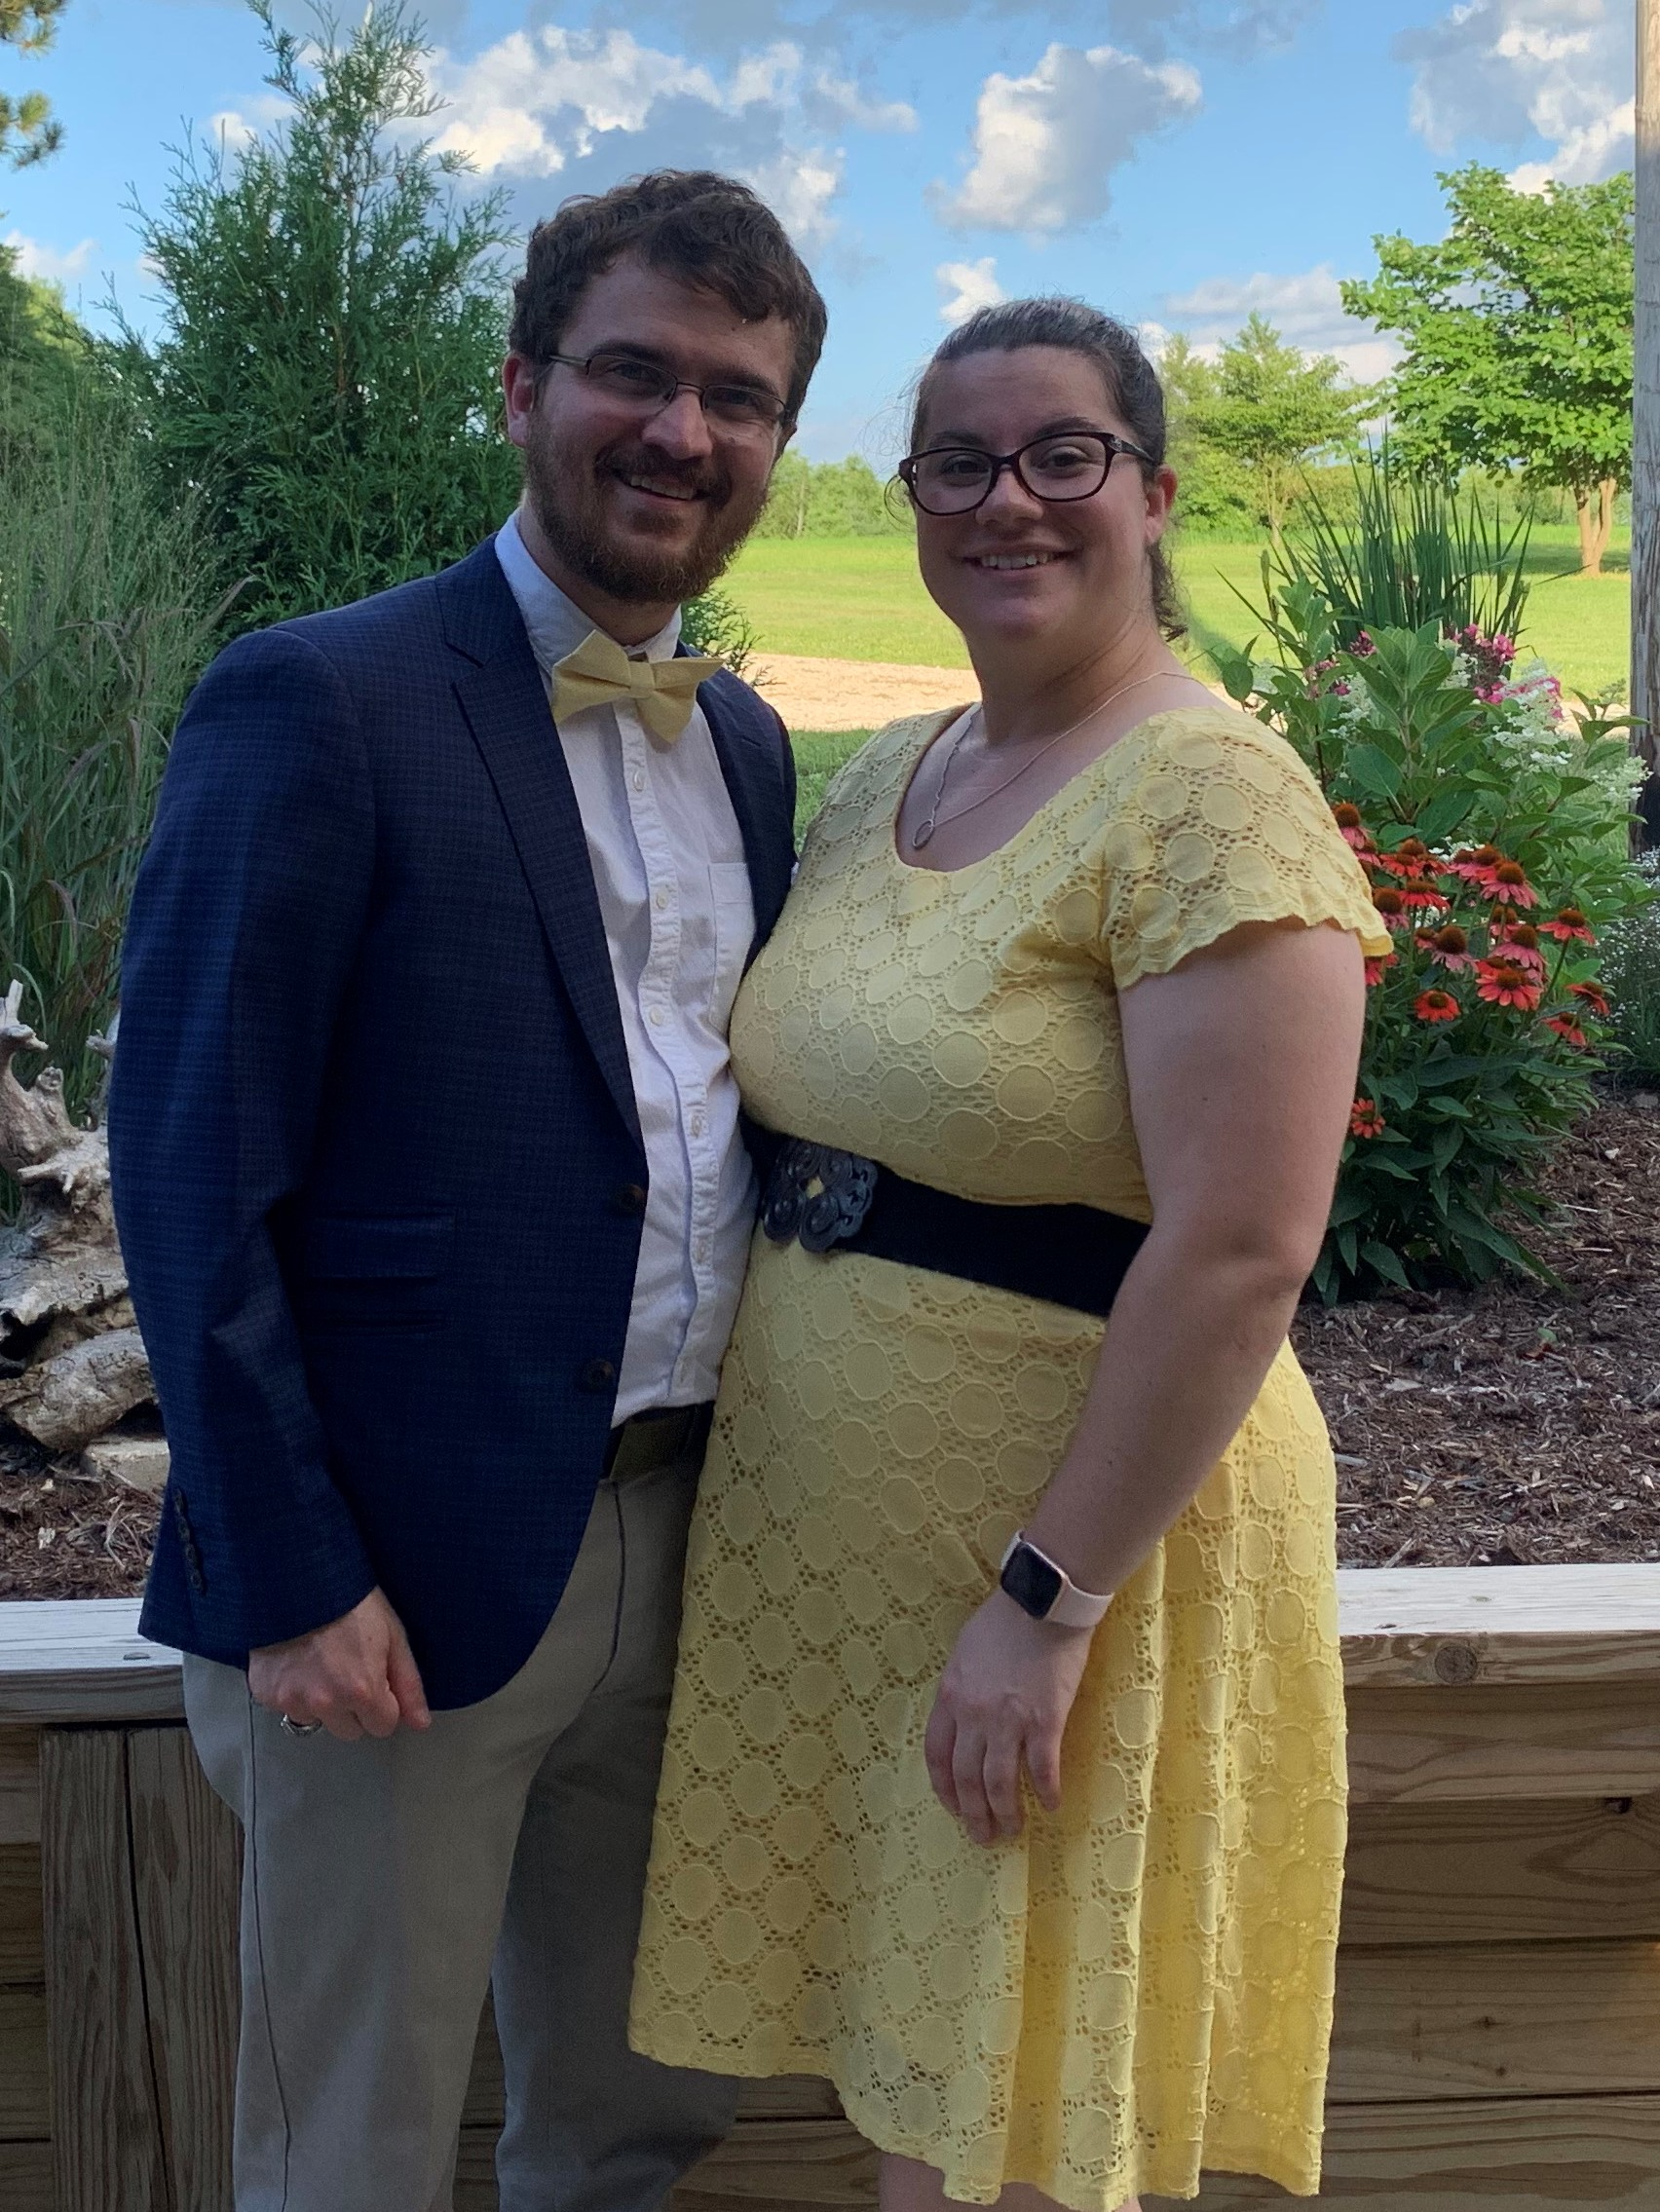 Wife and I at Family Wedding